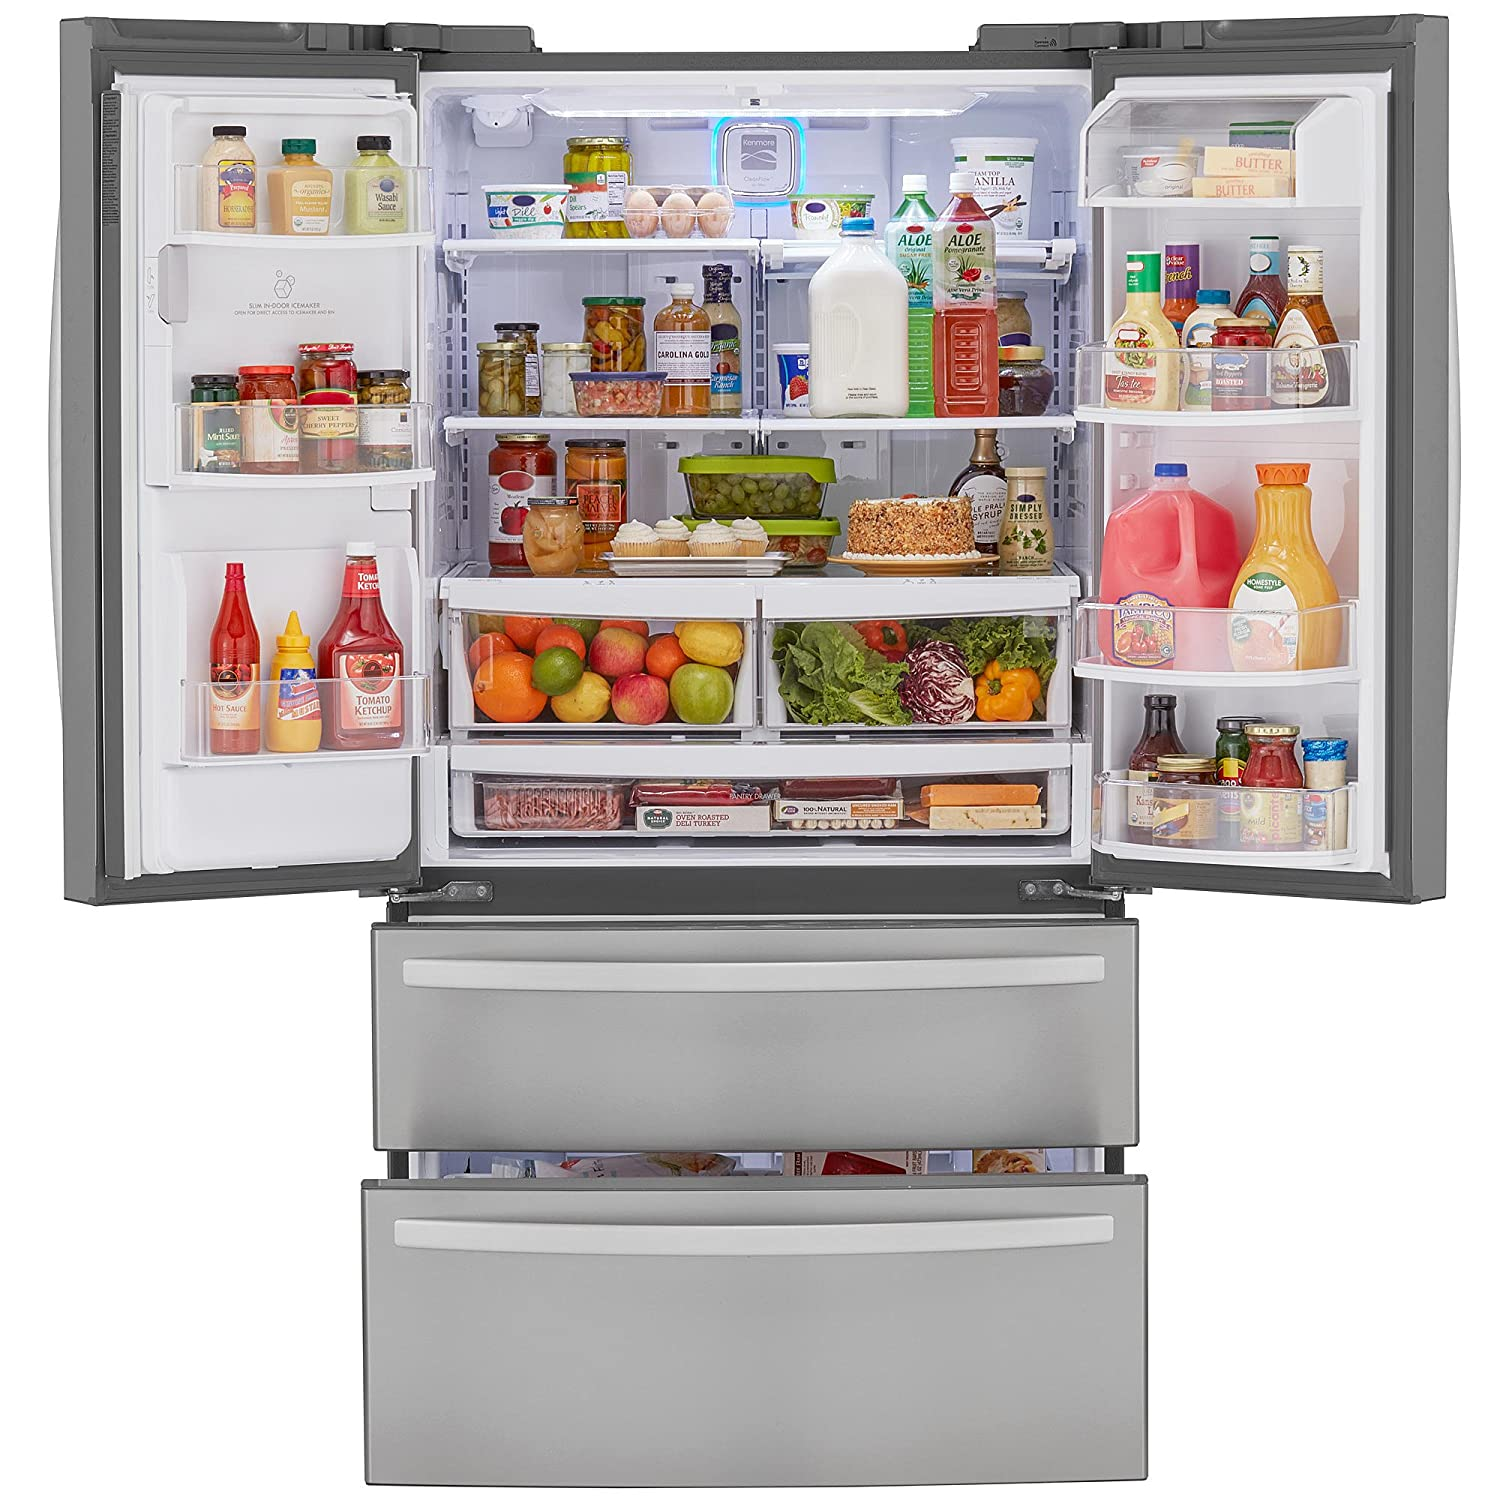 Whirlpool Gold French Door Refrigerator Reviews Part - 43: Amazon.com: Kenmore 72495 26.7 Cu. Ft. 4-Door French Door Refrigerator With  Dual Freezer Drawers, Active Finish: Appliances